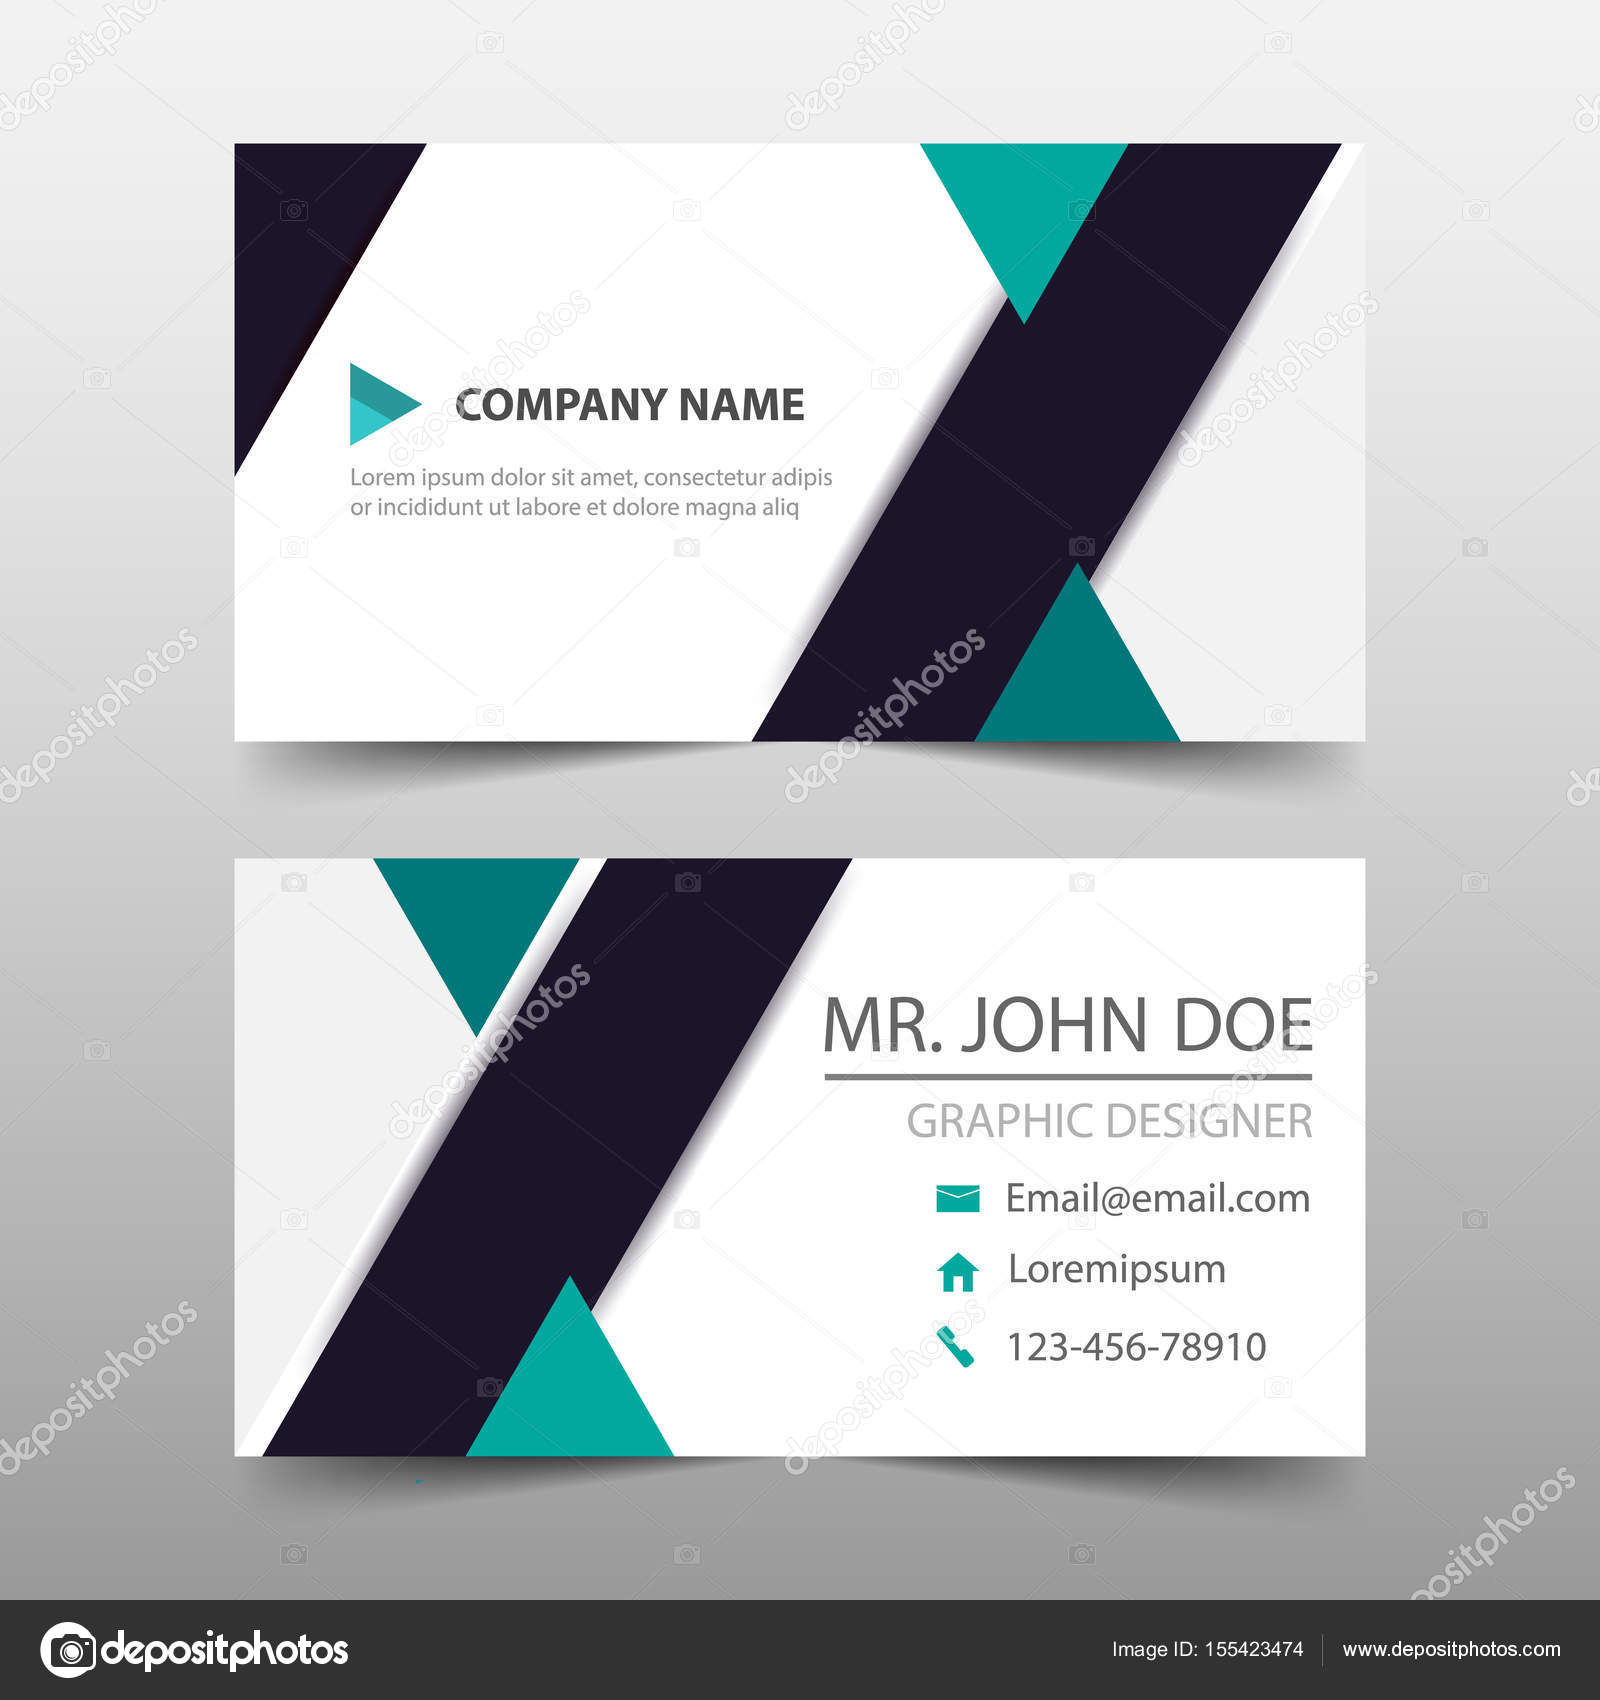 Green triange corporate business card, name card template ...